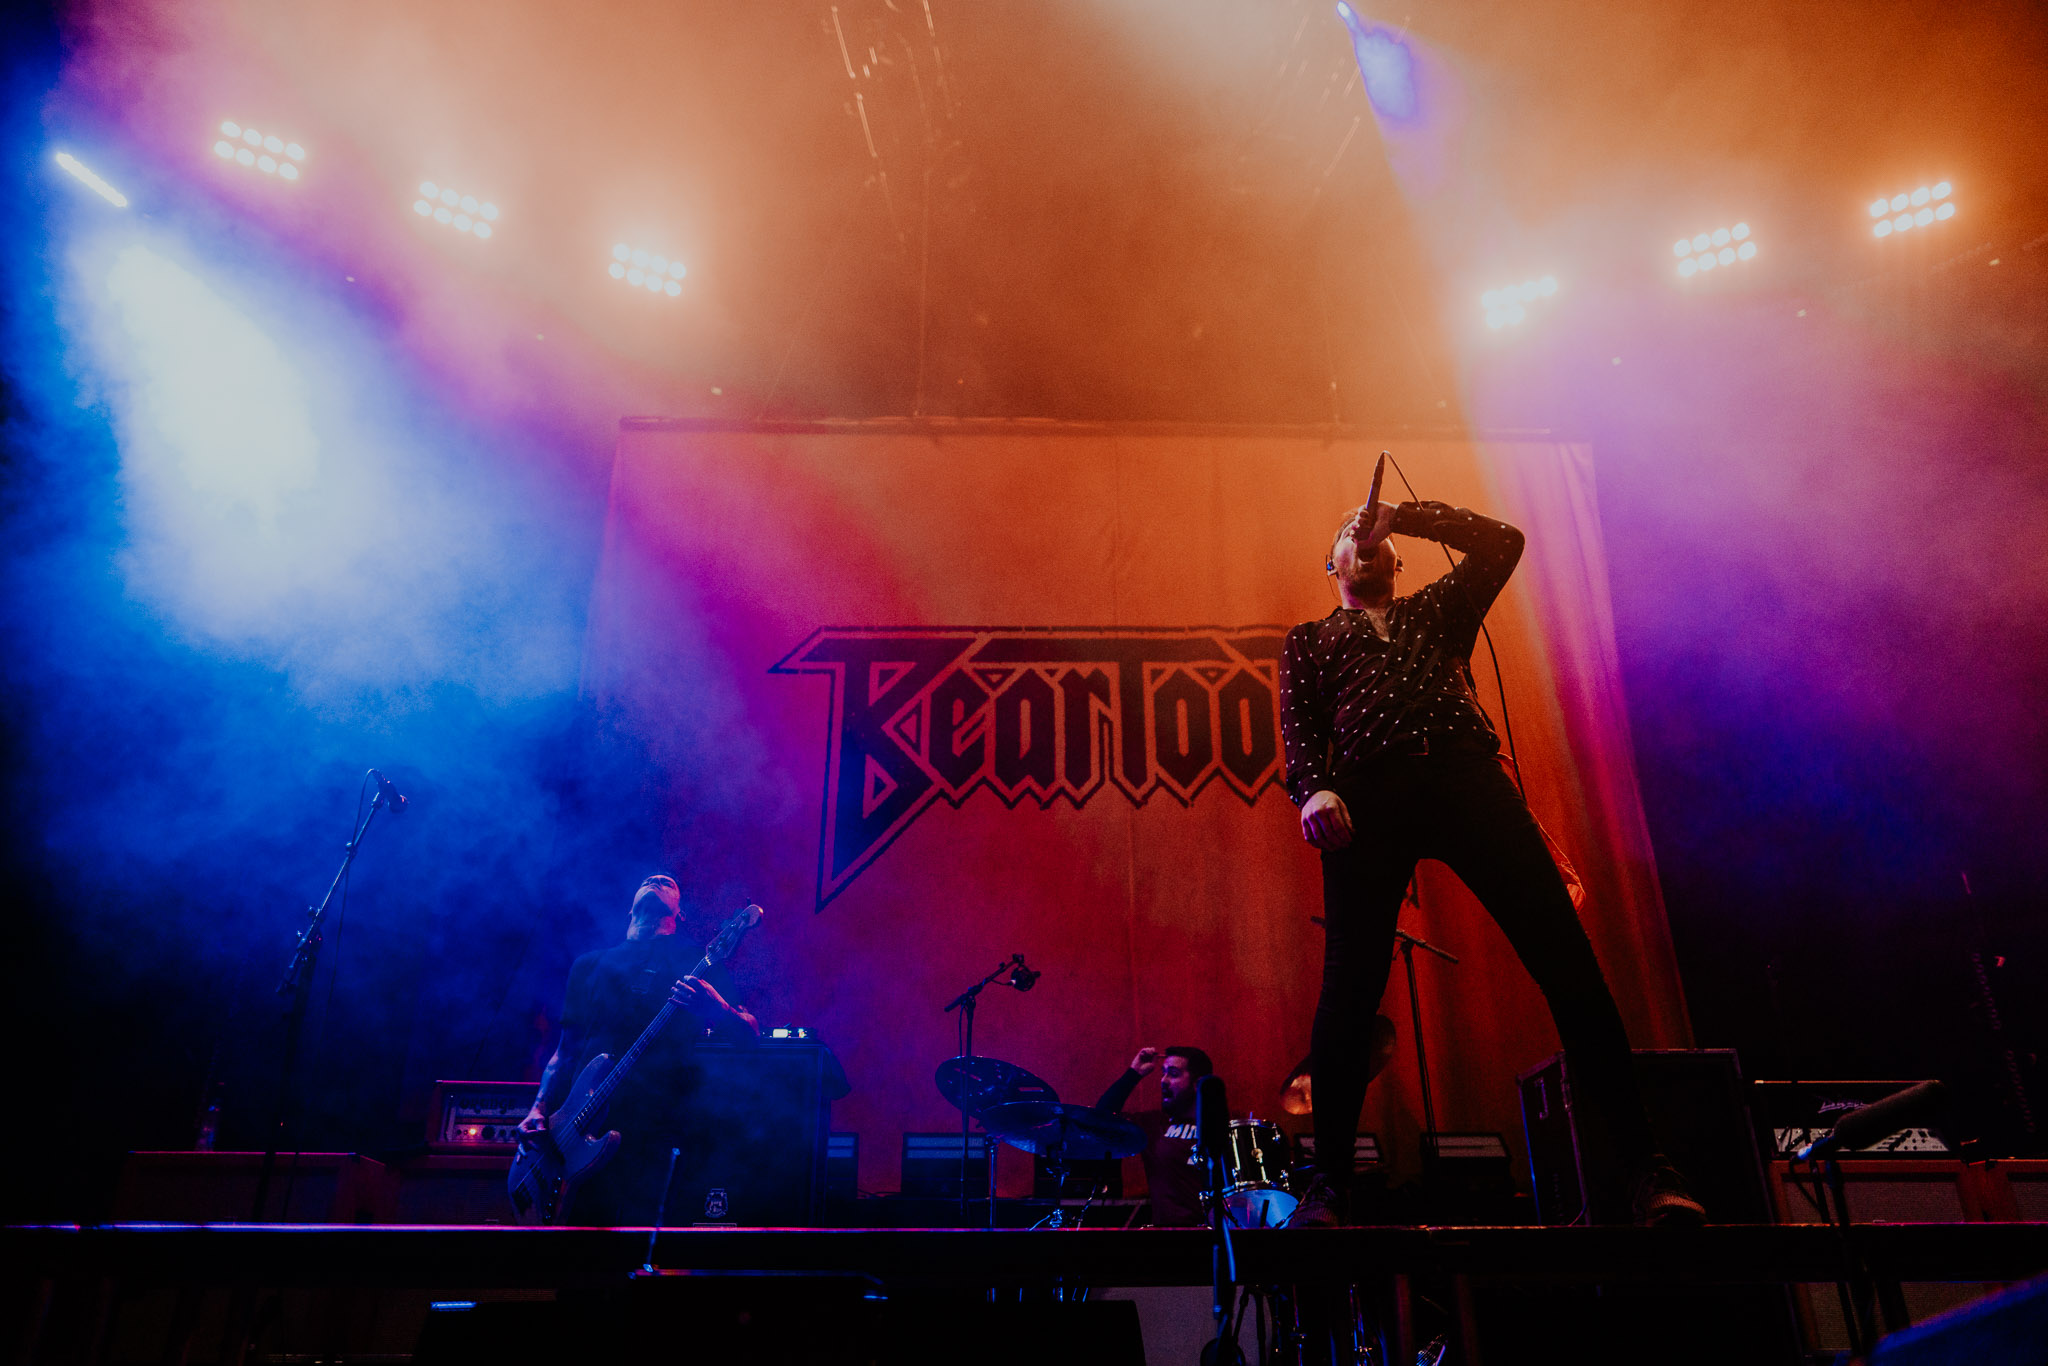 Beartooth_20190111_0204_@arnecrdnls